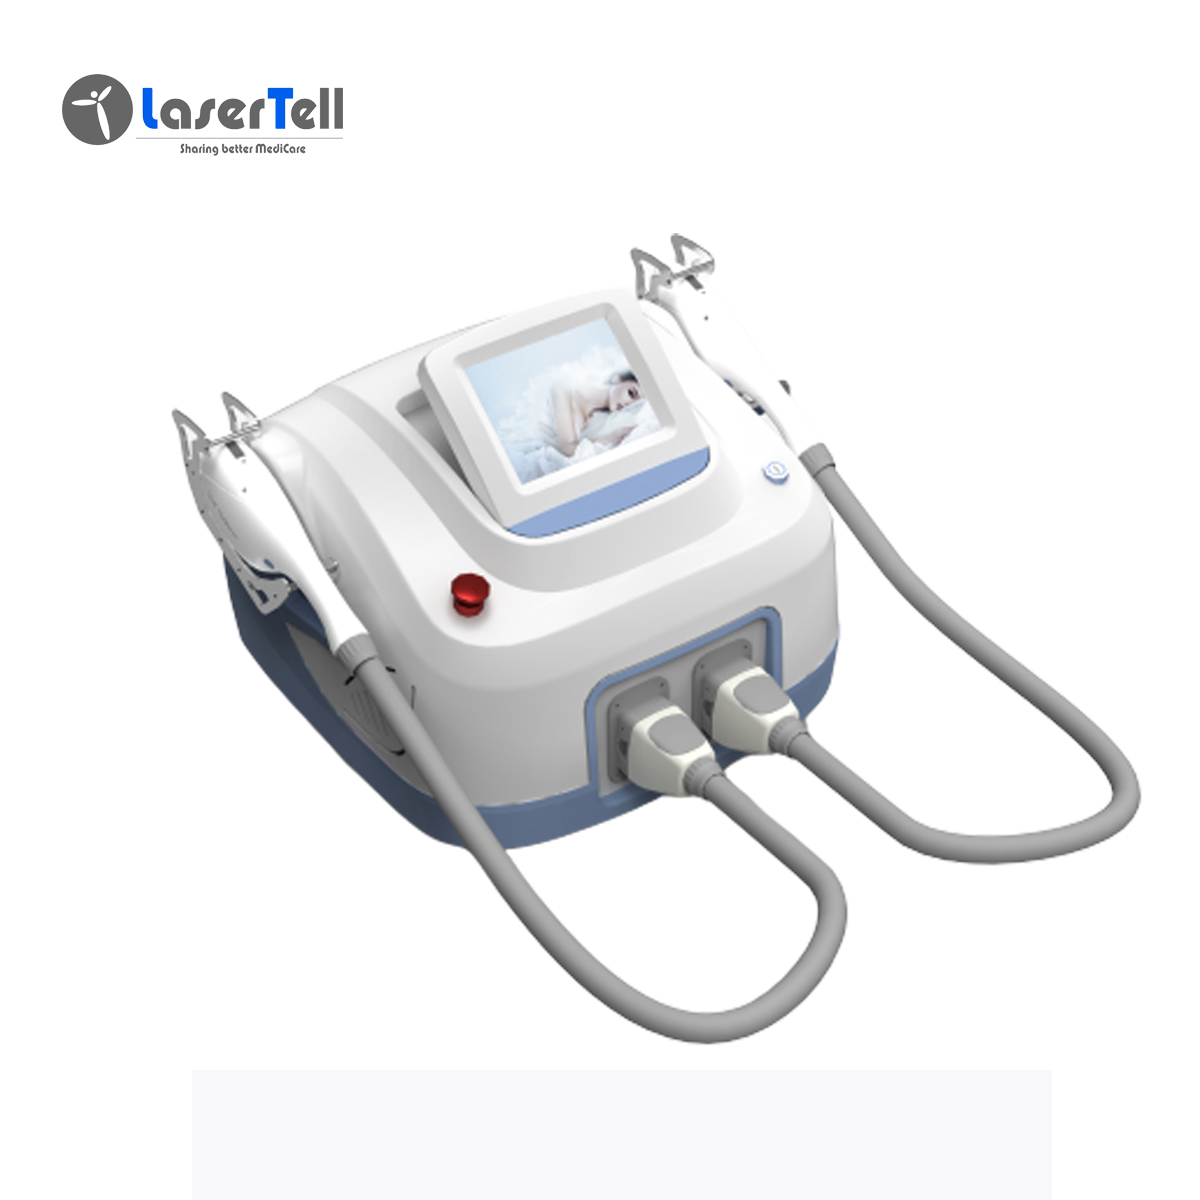 Portable opt ipl hair removal laser machine with 7 filters promotion price